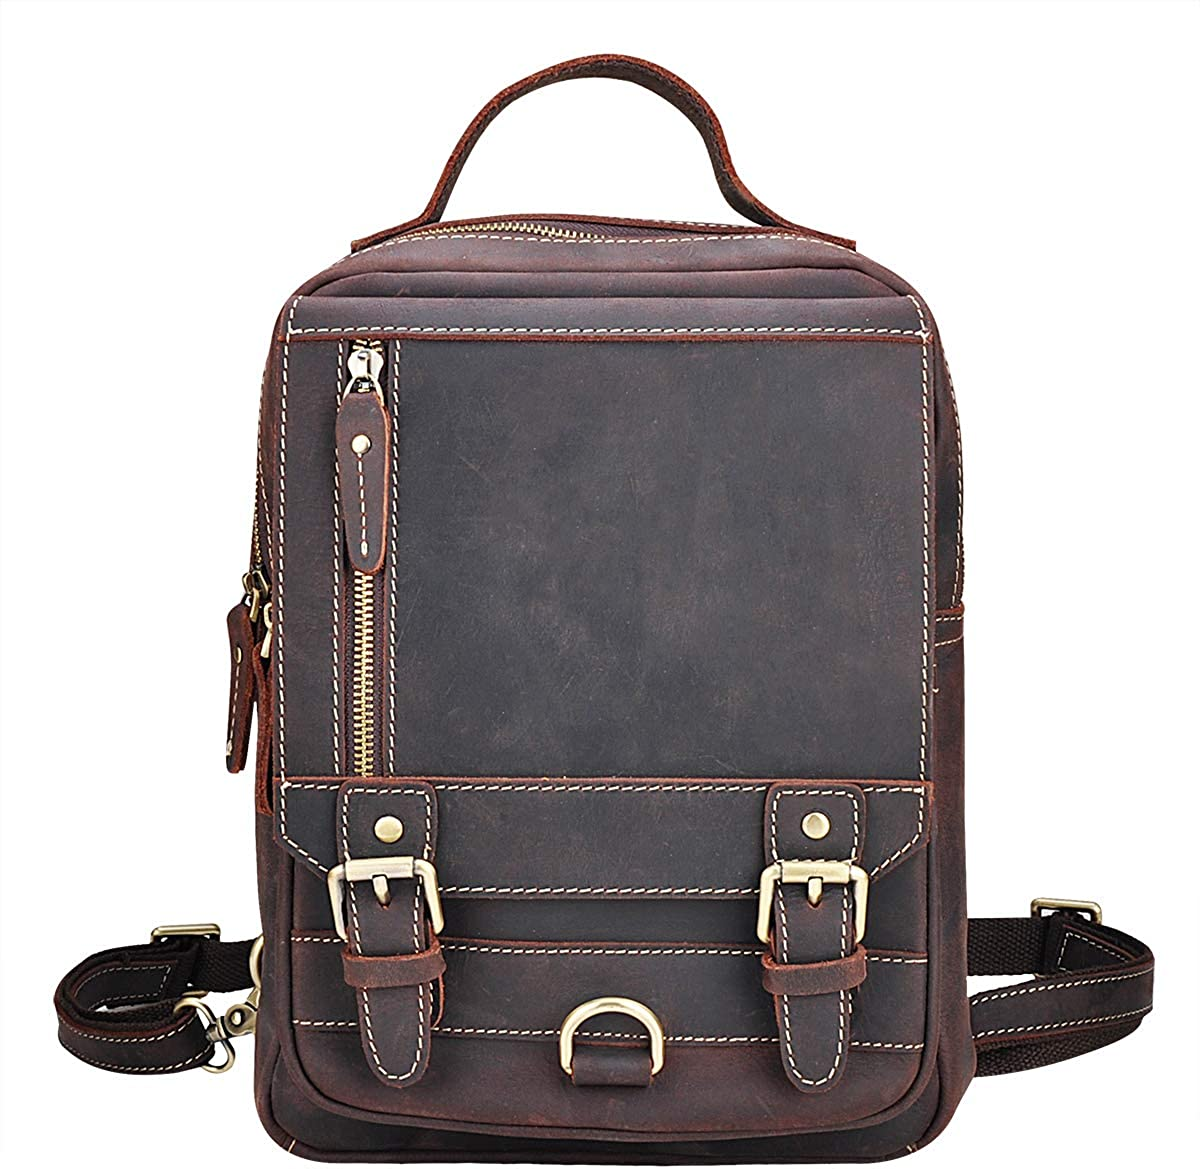 OakHide Vintage Leather Sling Bag Chest Daypack 2